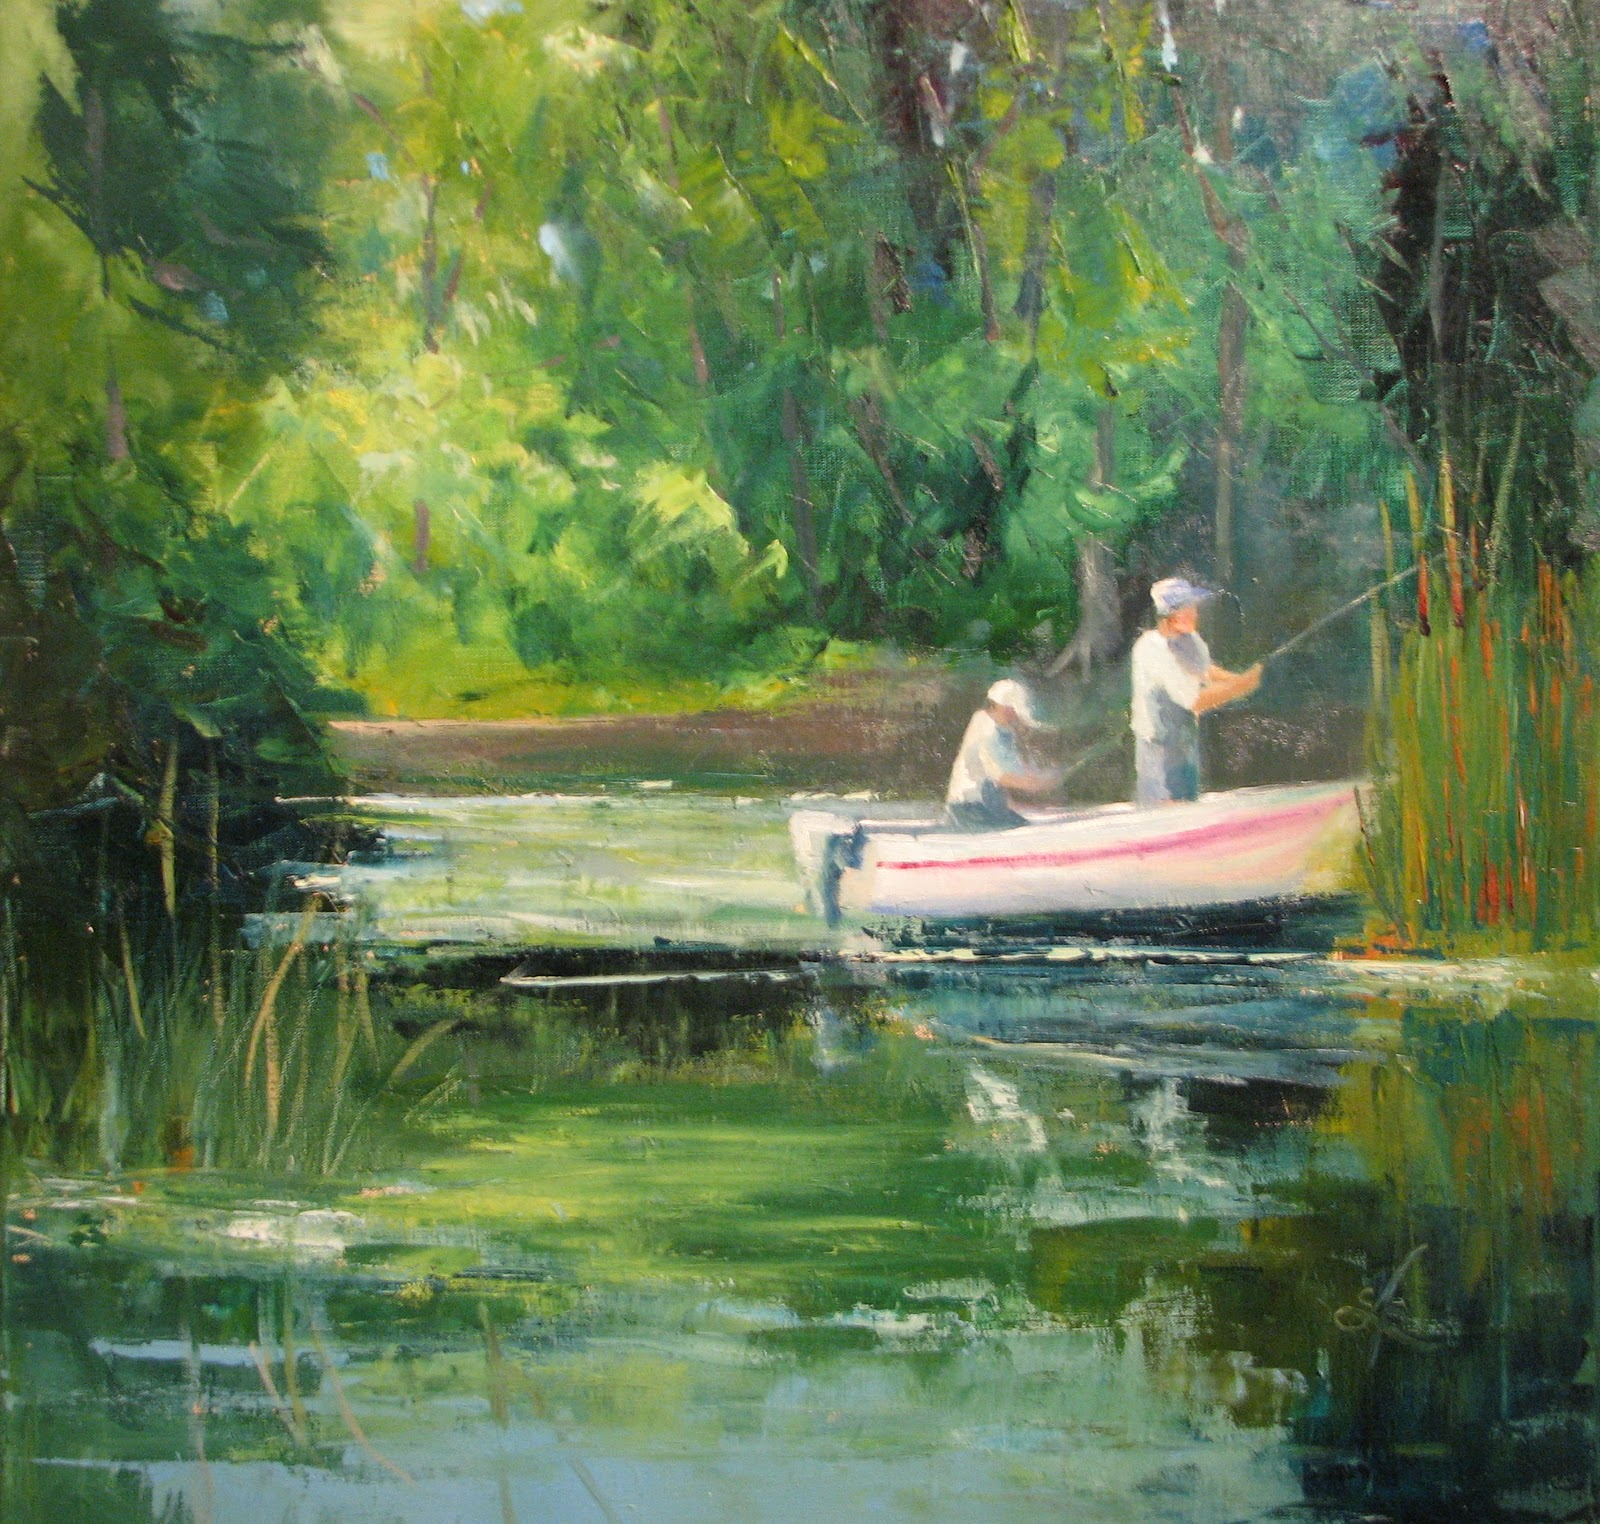 Cathyann39s Studio Backbay Fishermen Landscape Oil Painting